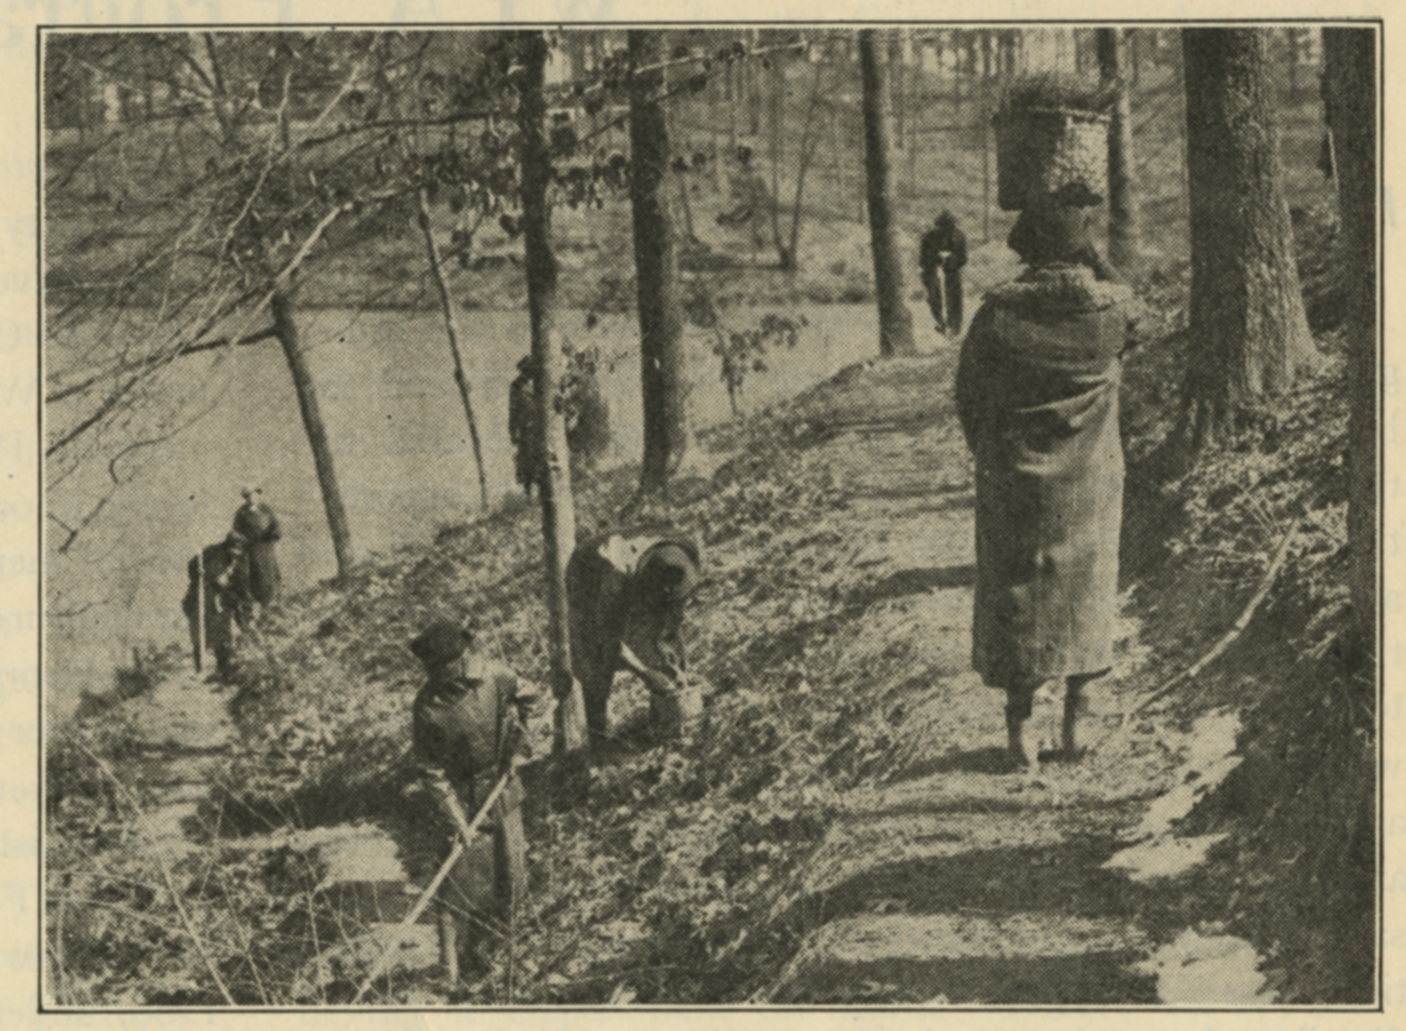 Photograph of women constructing the wildflower and bird sanctuary at Lee Memorial Park, WPA Record (March 1937), image courtesy of the Library of Virginia.